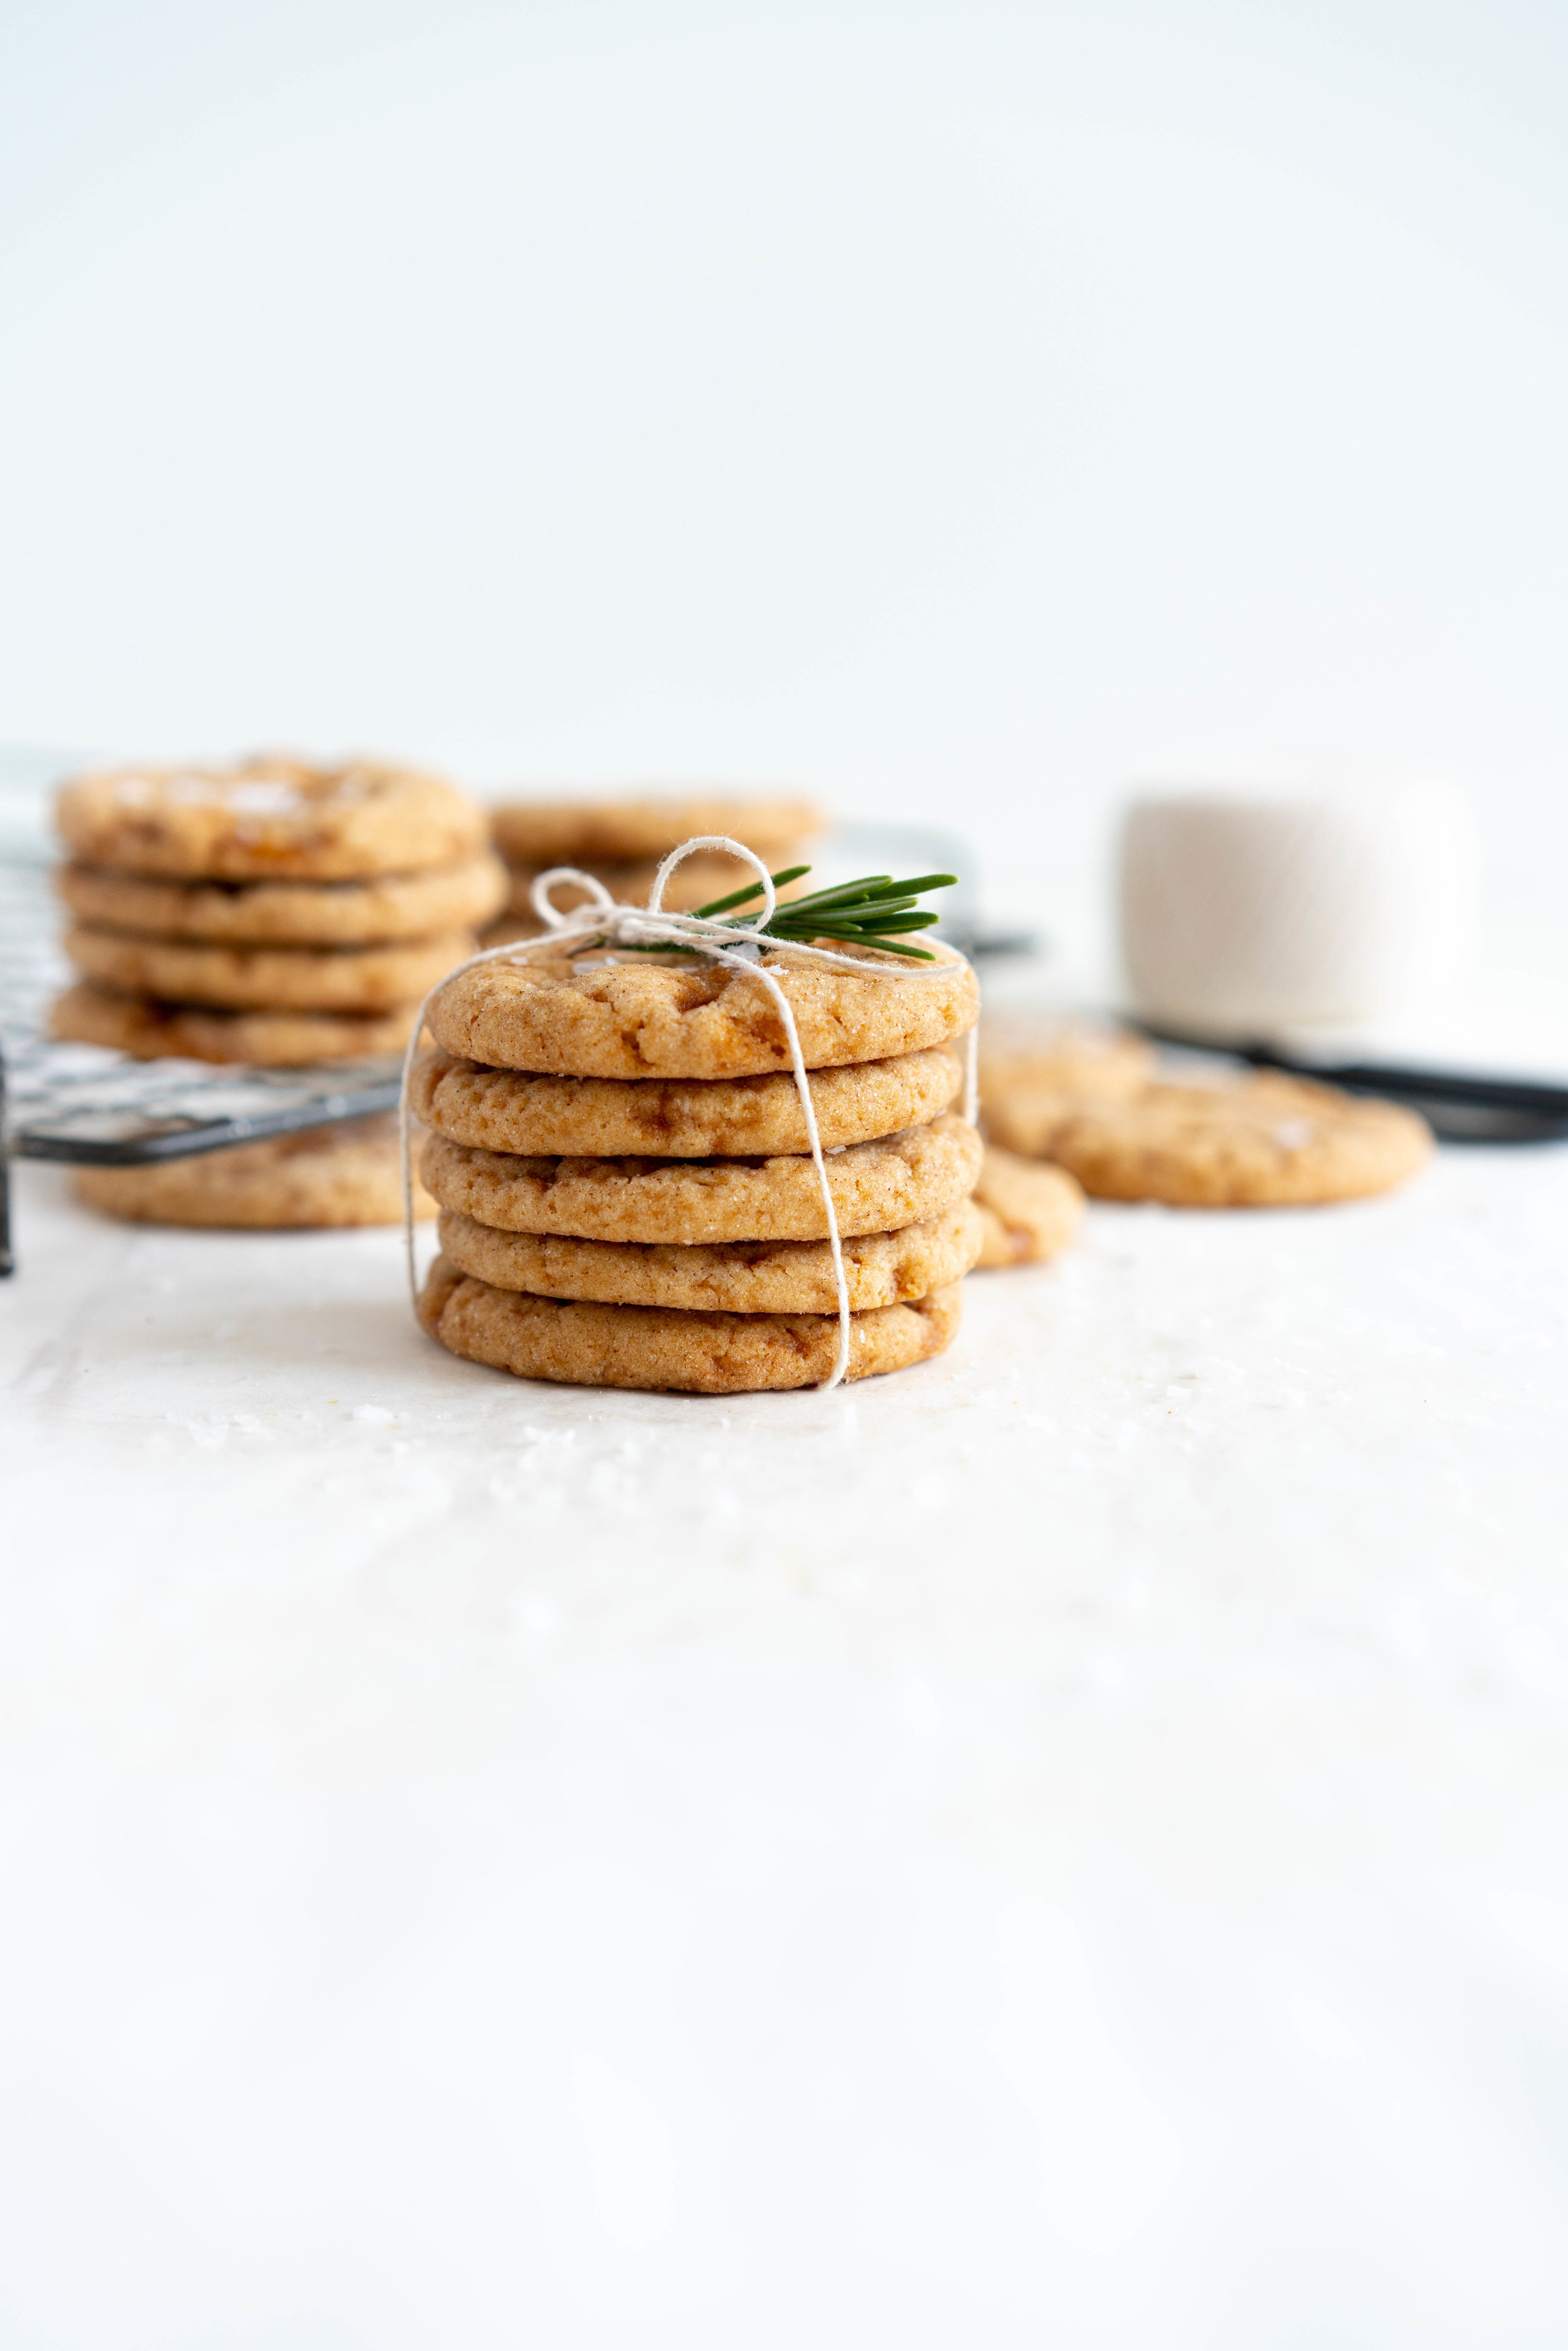 Salted caramel snickerdoodles - hard caramel is ground up and mixed into the cookie dough, then chunks of caramel are folded through to form chewy pockets once the cookie has baked. The perfect crowd pleasing christmas cookie.